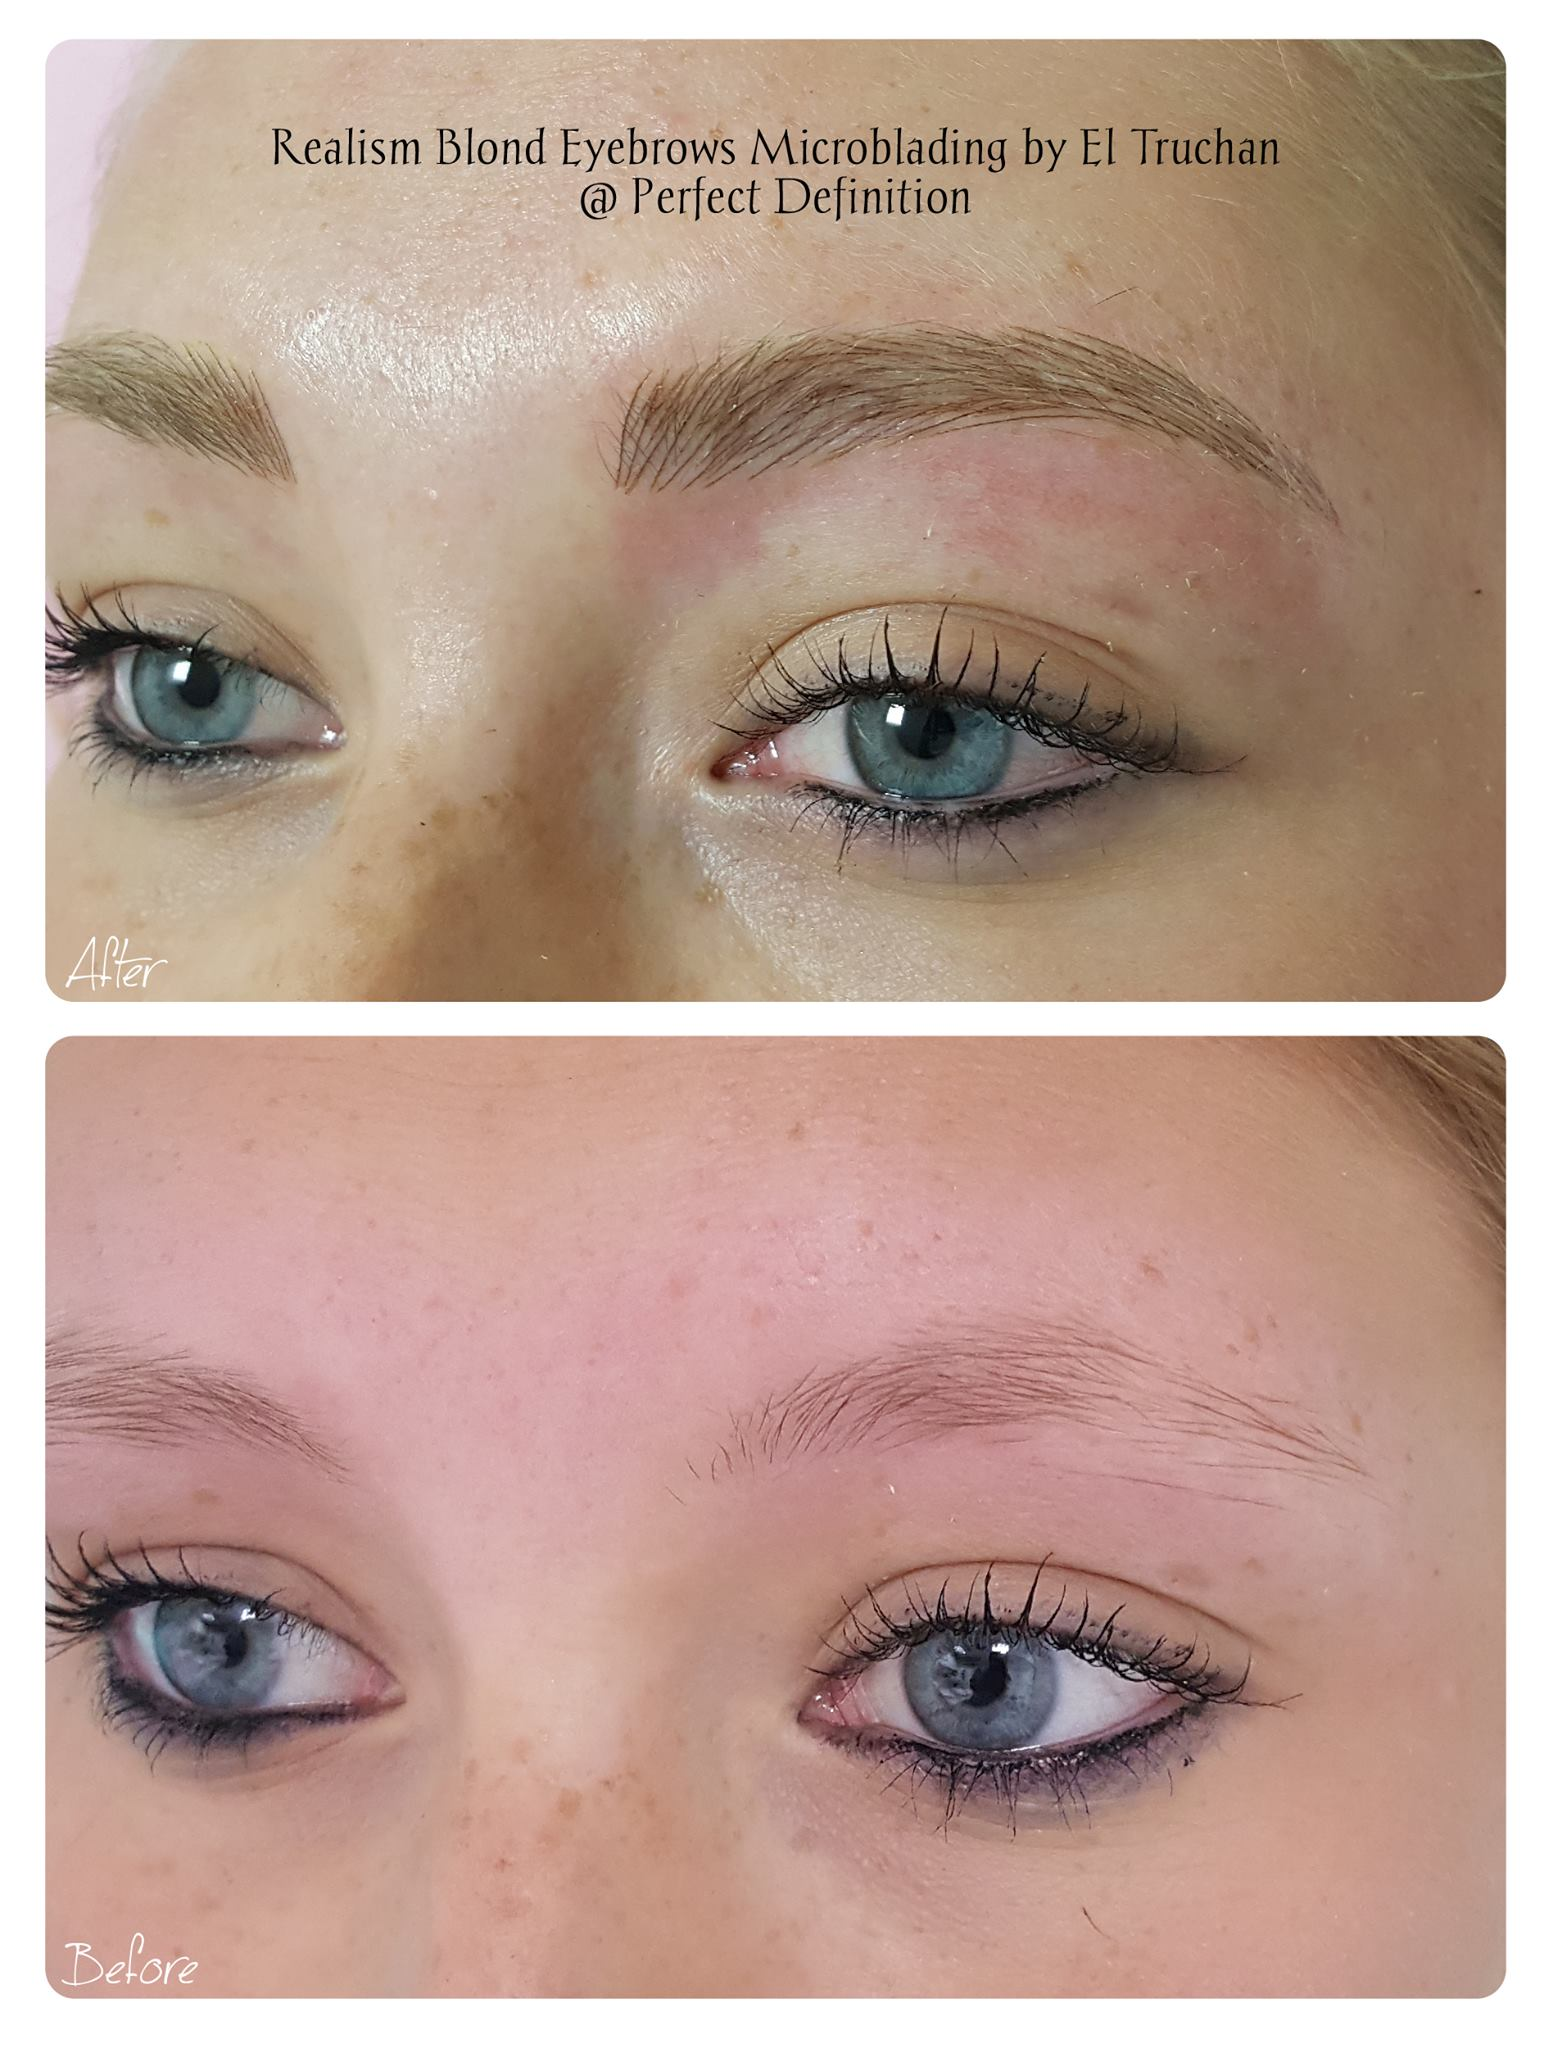 Realism Blonde Eyebrows Microblading